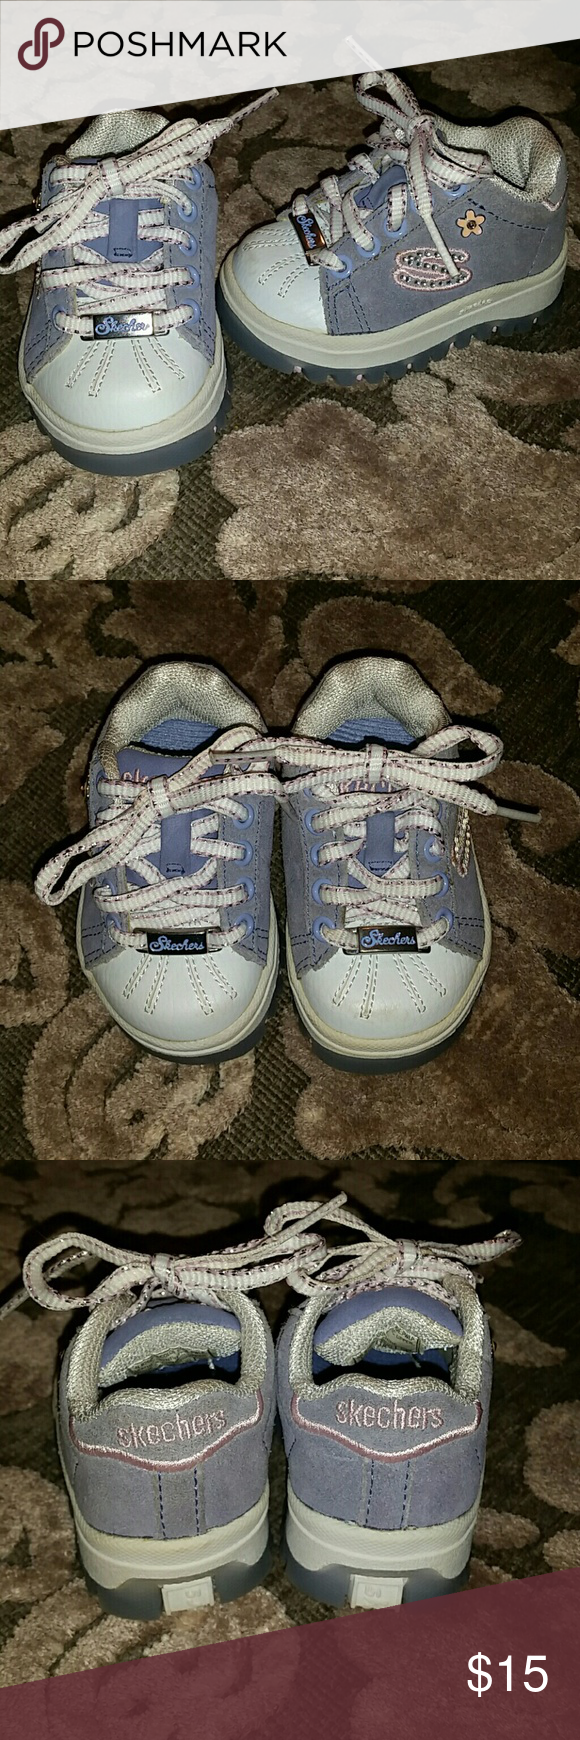 Baby Skecher Sneakers Powder blue with sweet pink details and metallic accents make these sneakers adorable for the most stylish baby girl. Barely worn, never walked in, these shoes are in mint condition. Skechers Shoes Sneakers